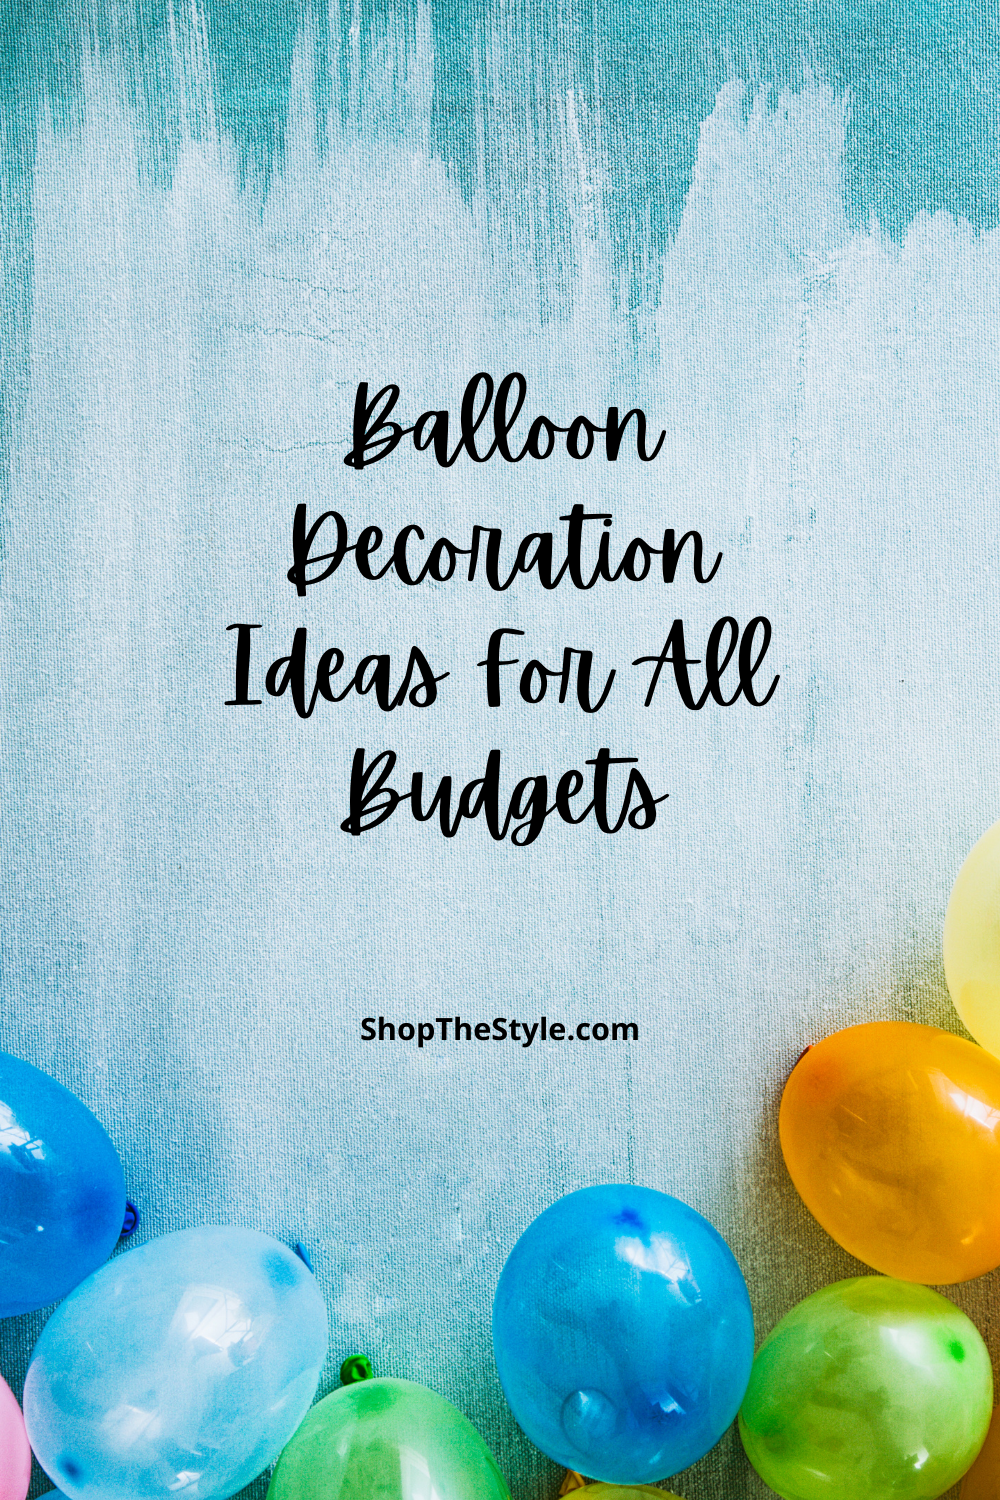 Balloon Decoration Ideas For All Budgets